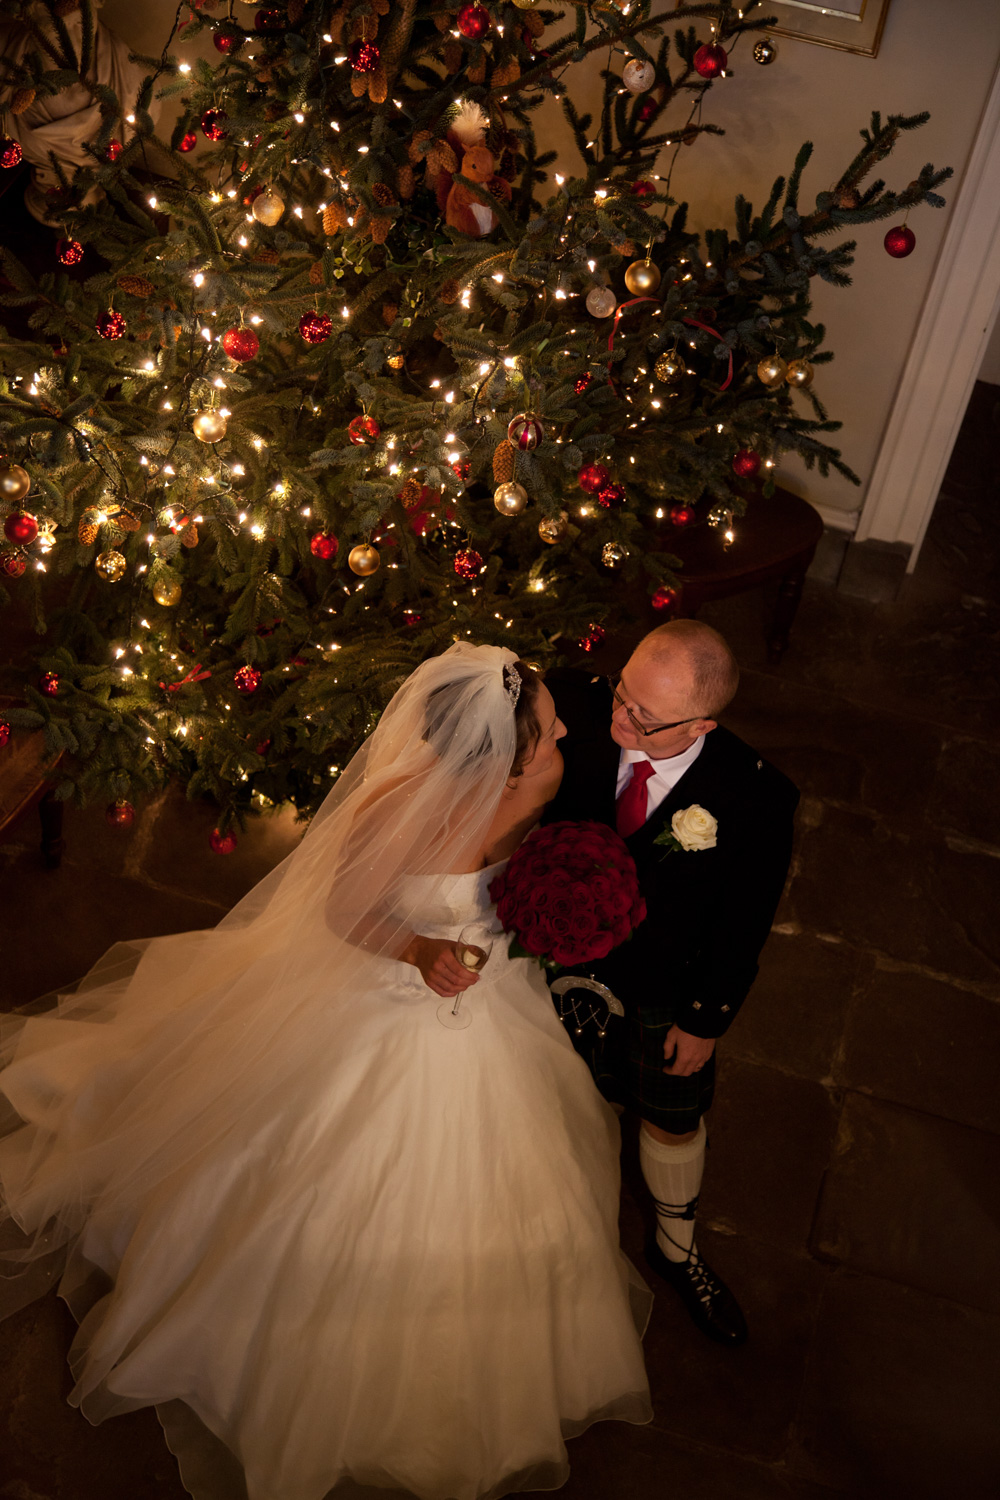 PICTORIAL_BERWICK_wedding_wedderburn-castle-winter-christmas-photographer--4365.jpg